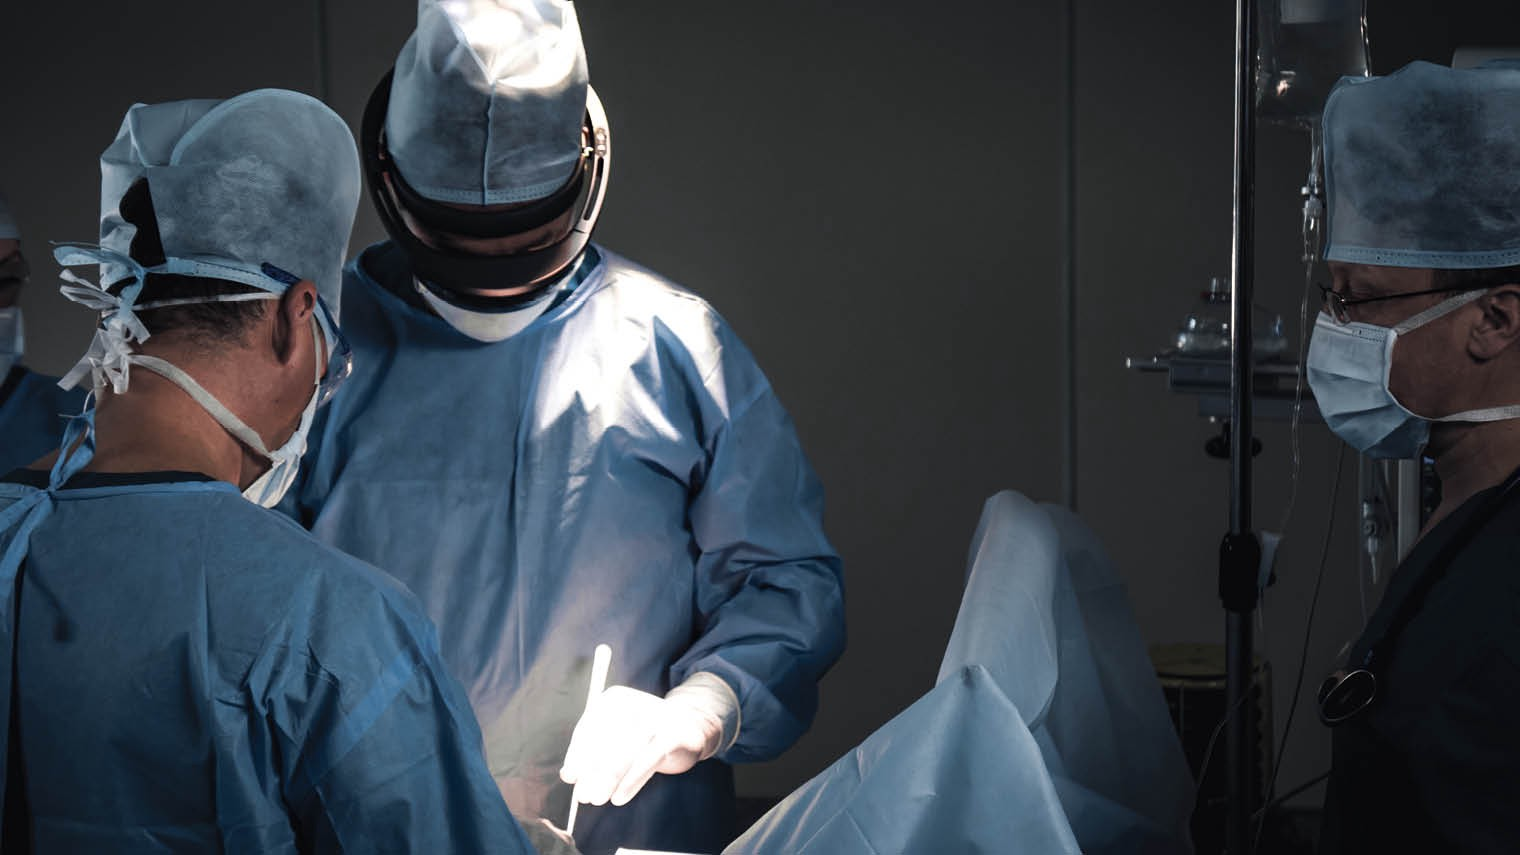 Surgeons performing an operation with an augmented reality (AR) headset